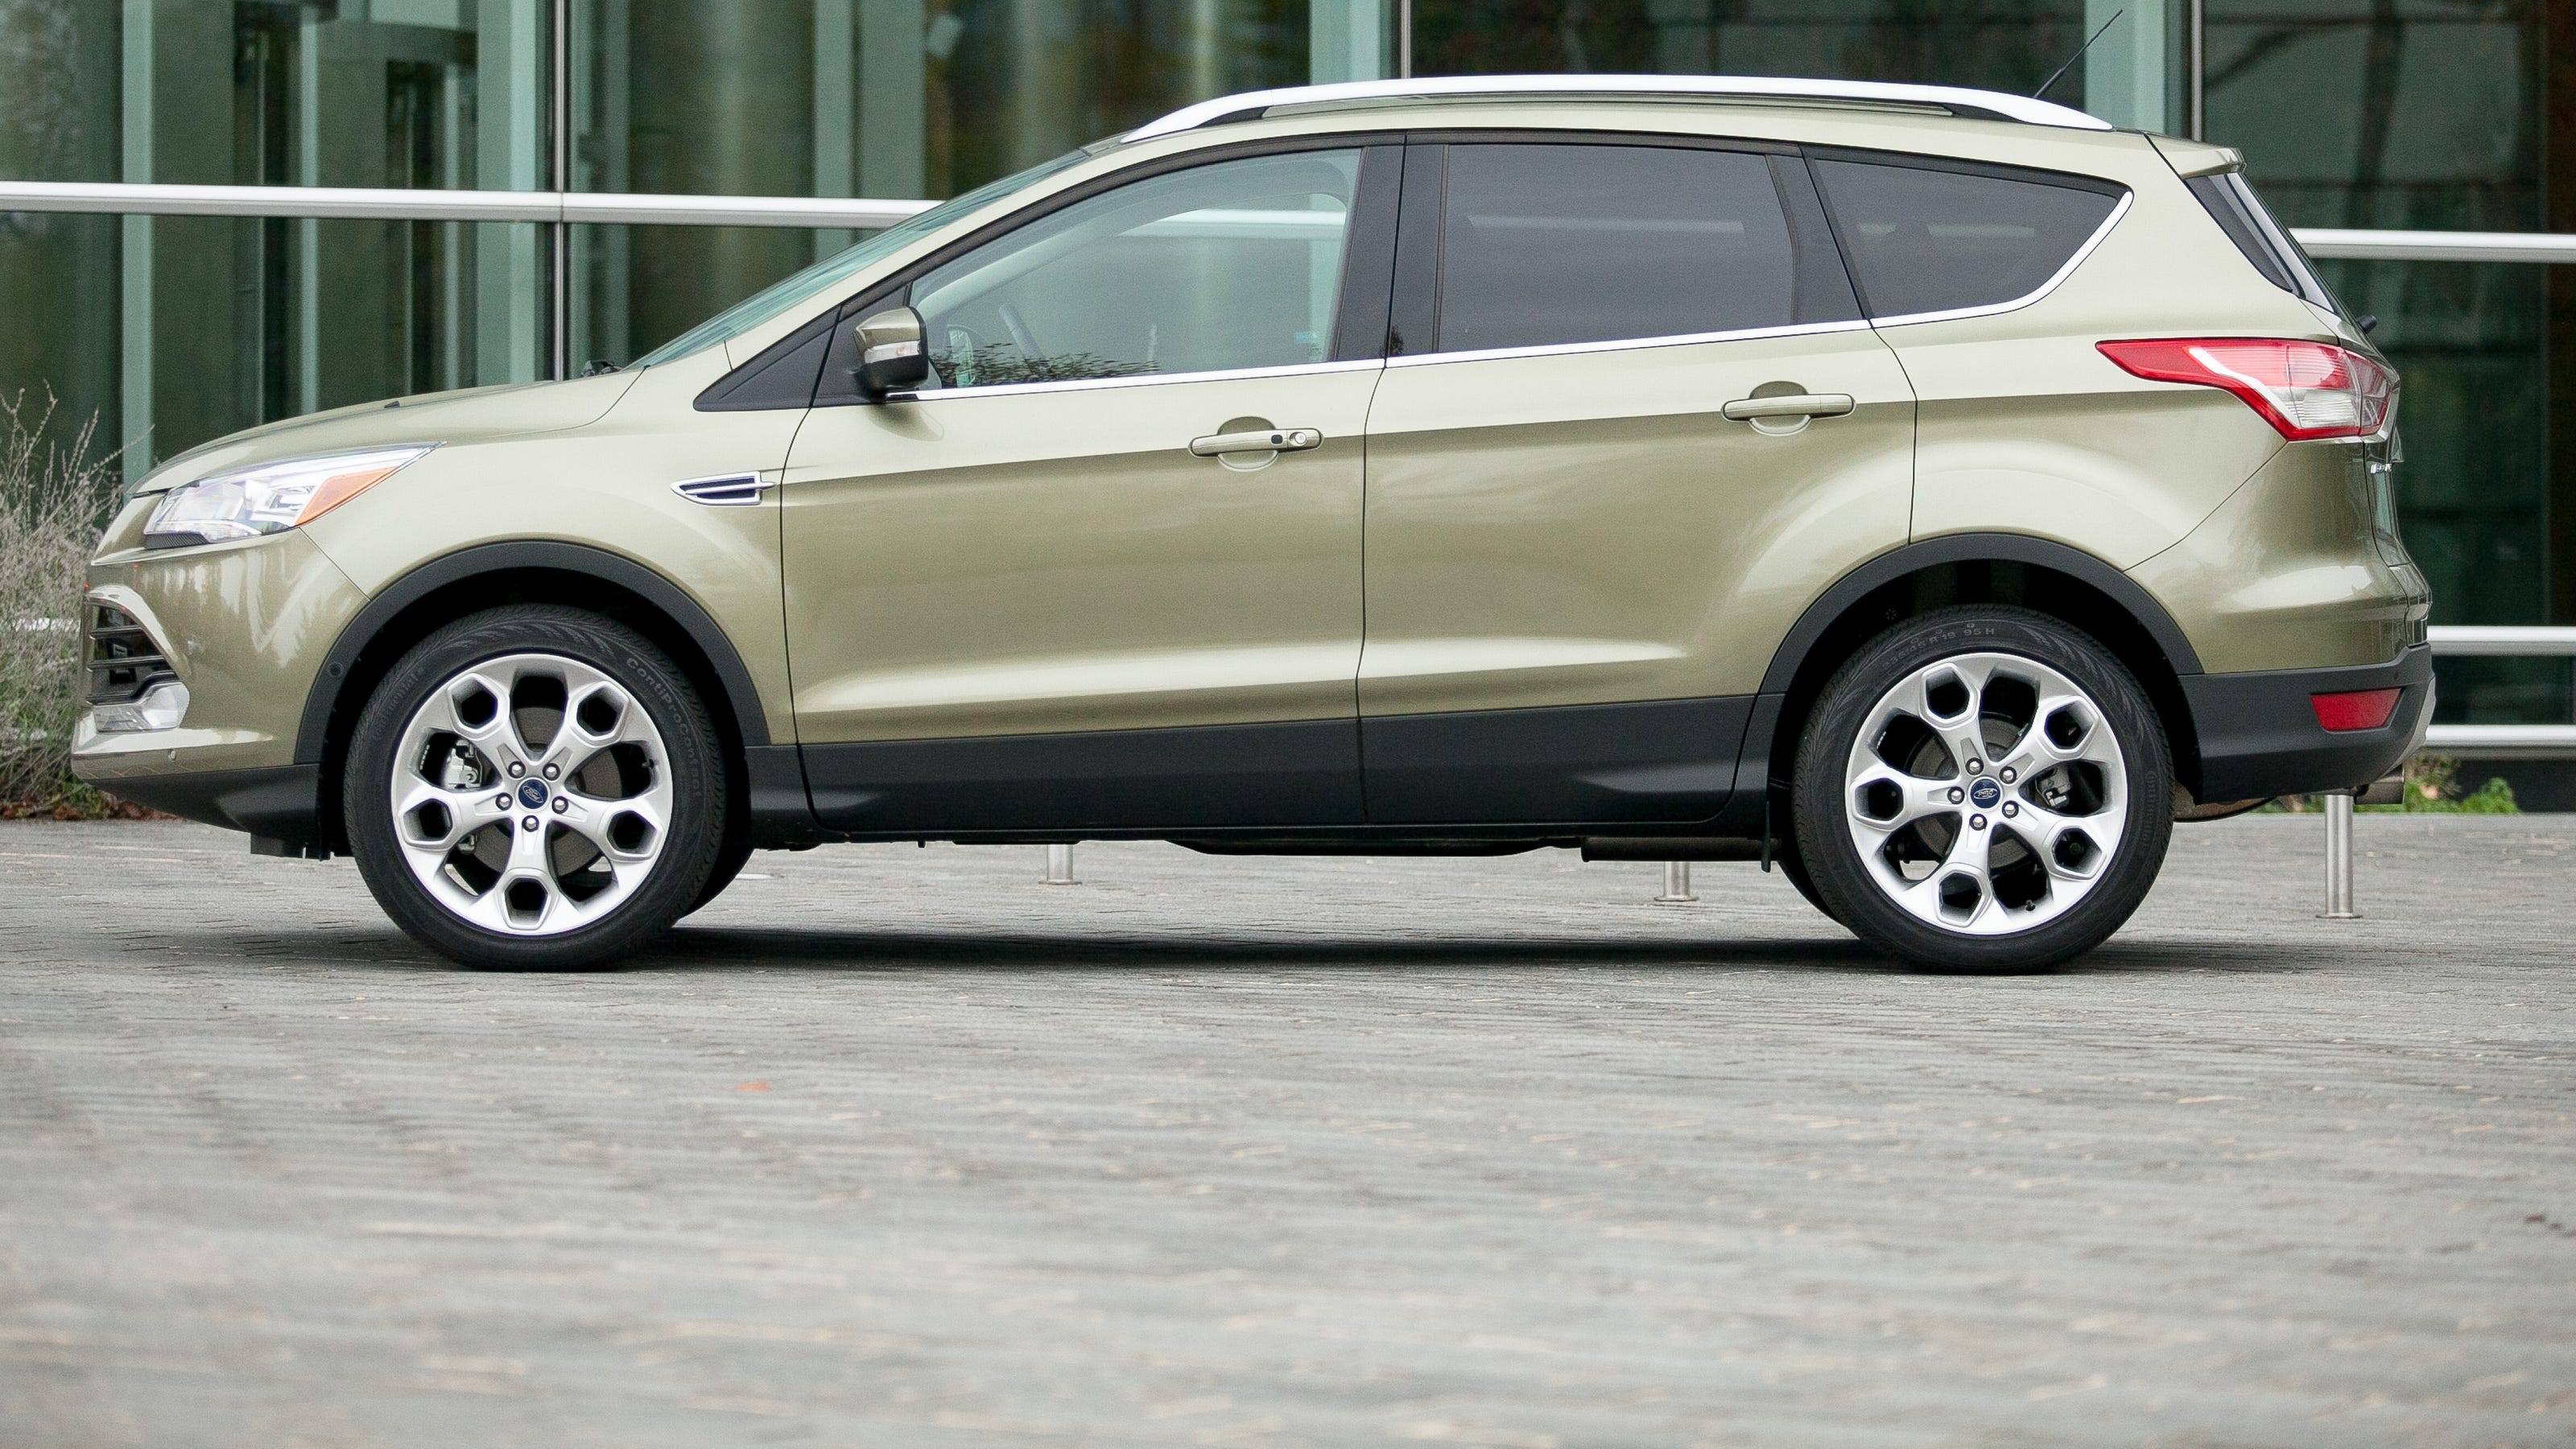 2006 ford edge reviews ratings prices consumer reports. Black Bedroom Furniture Sets. Home Design Ideas